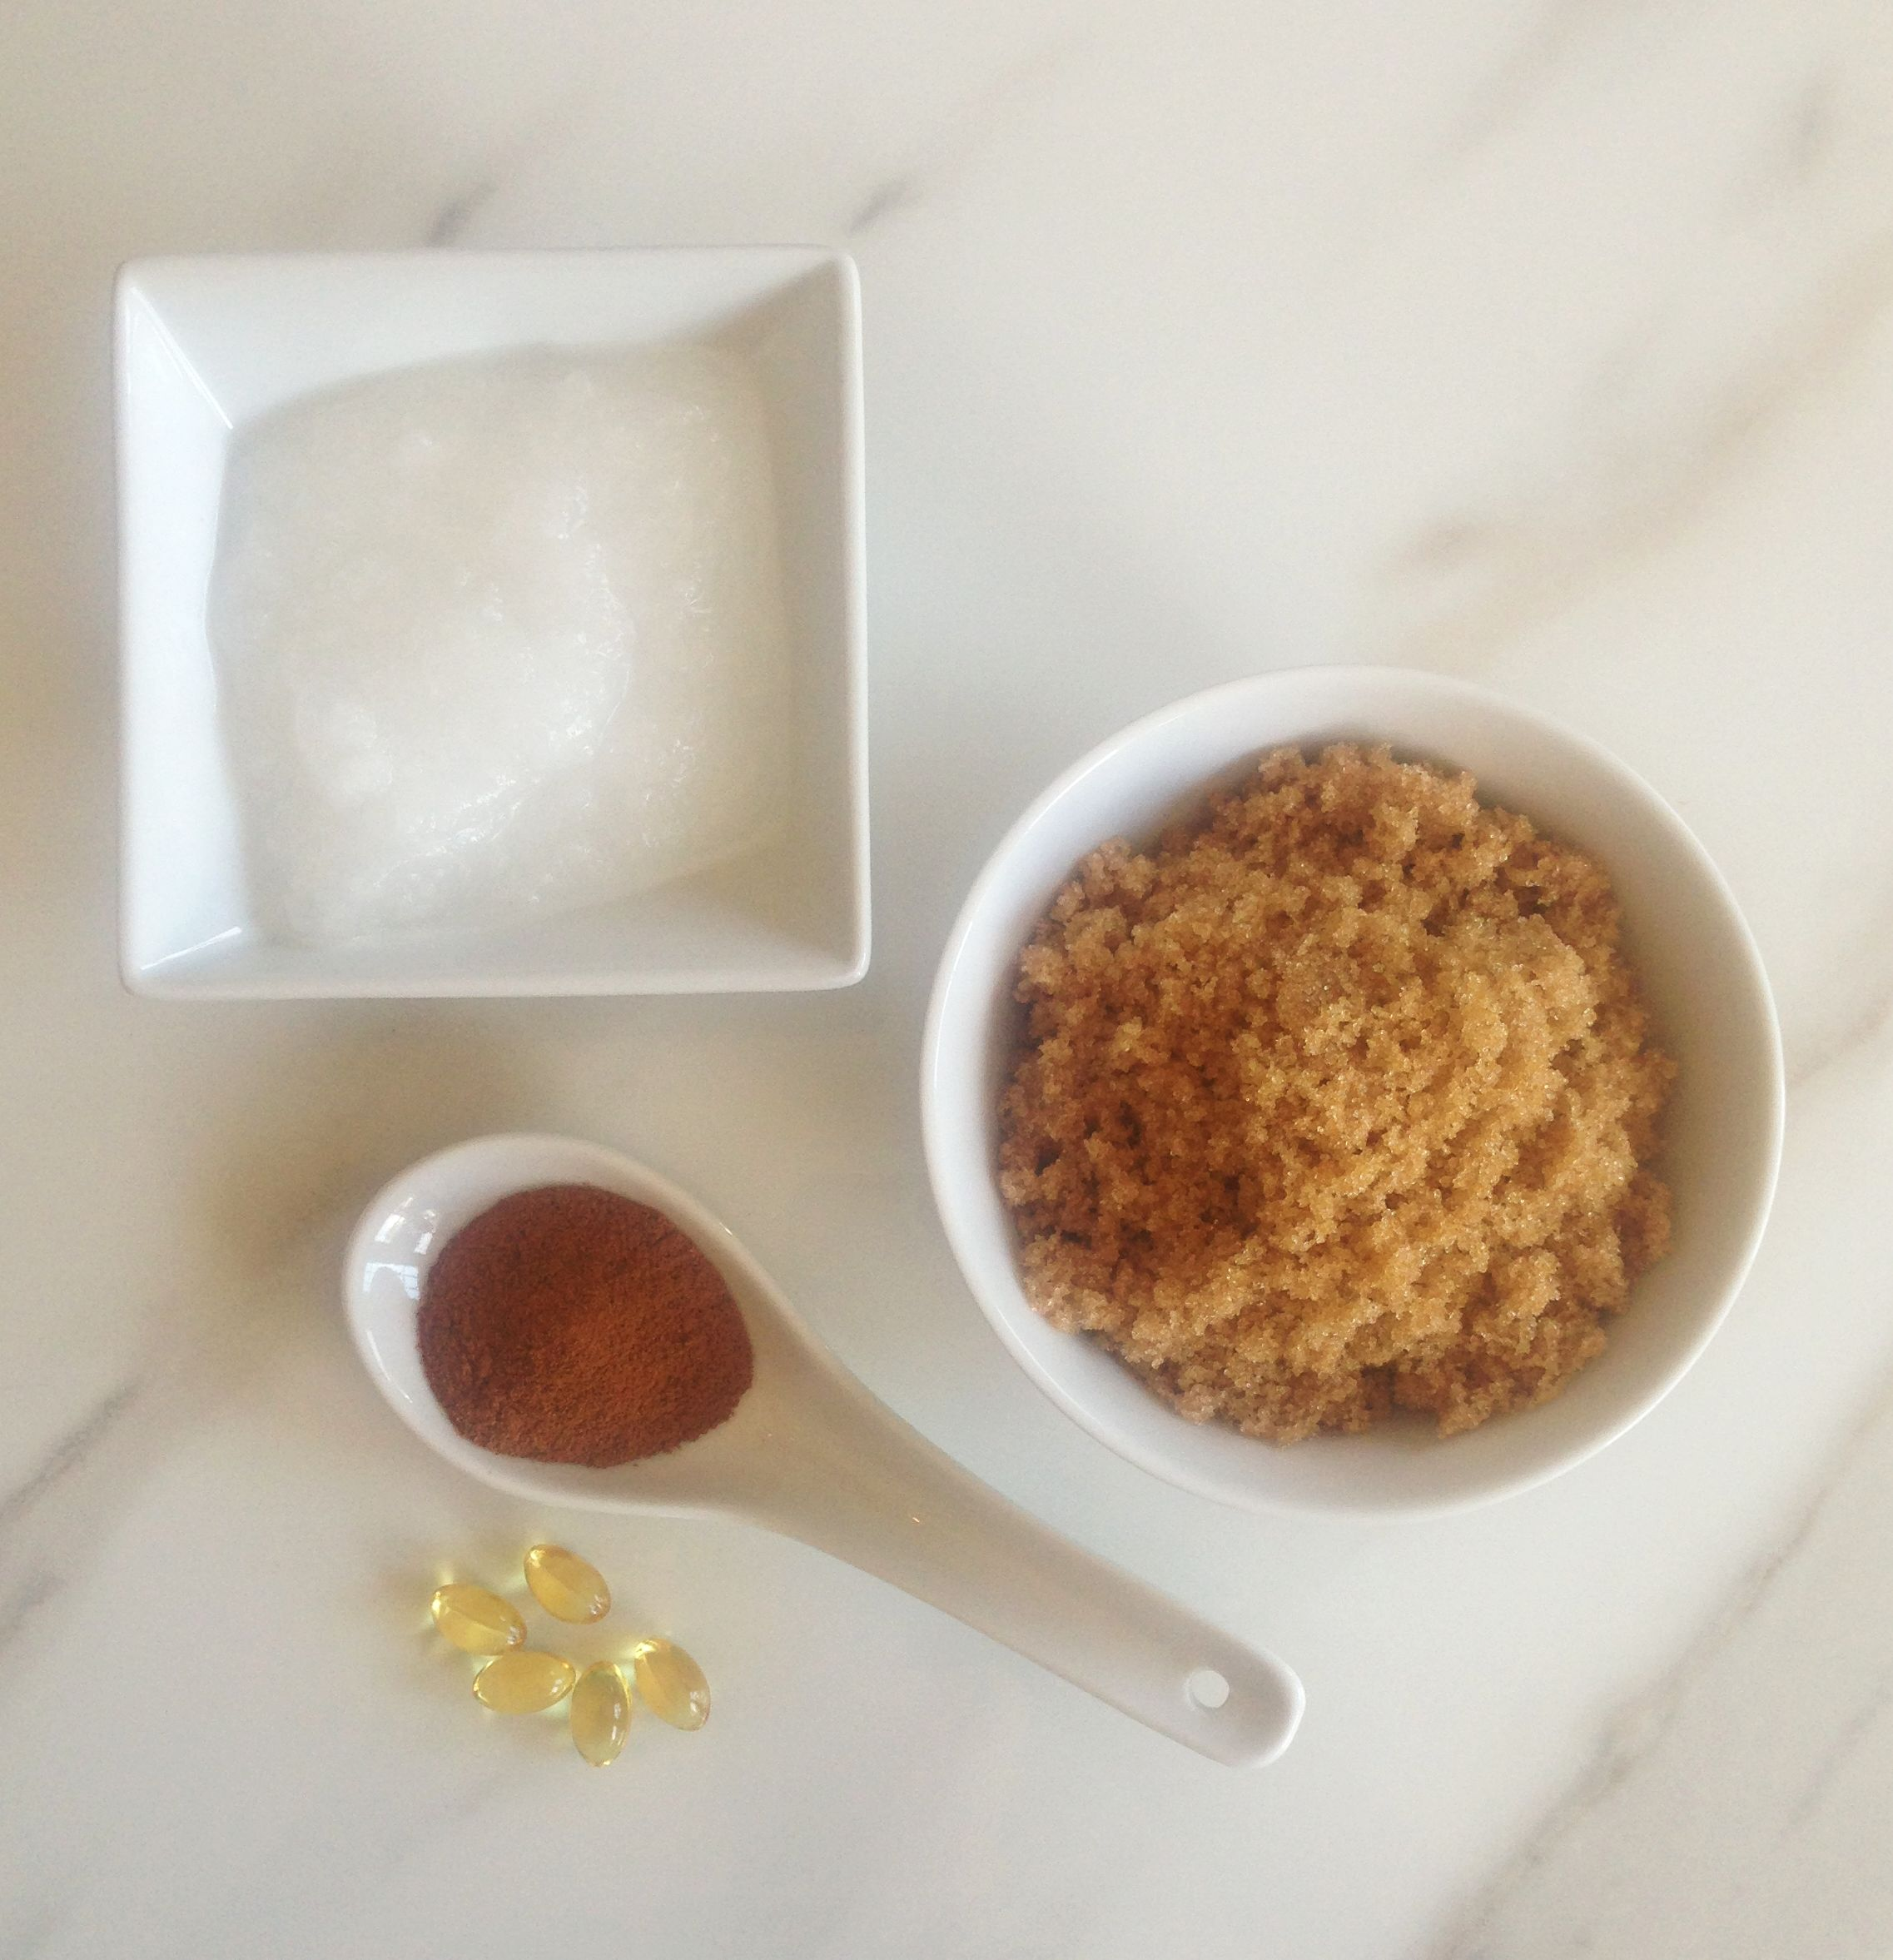 Homemade Body Scrub With Coconut Oil And Brown Sugar